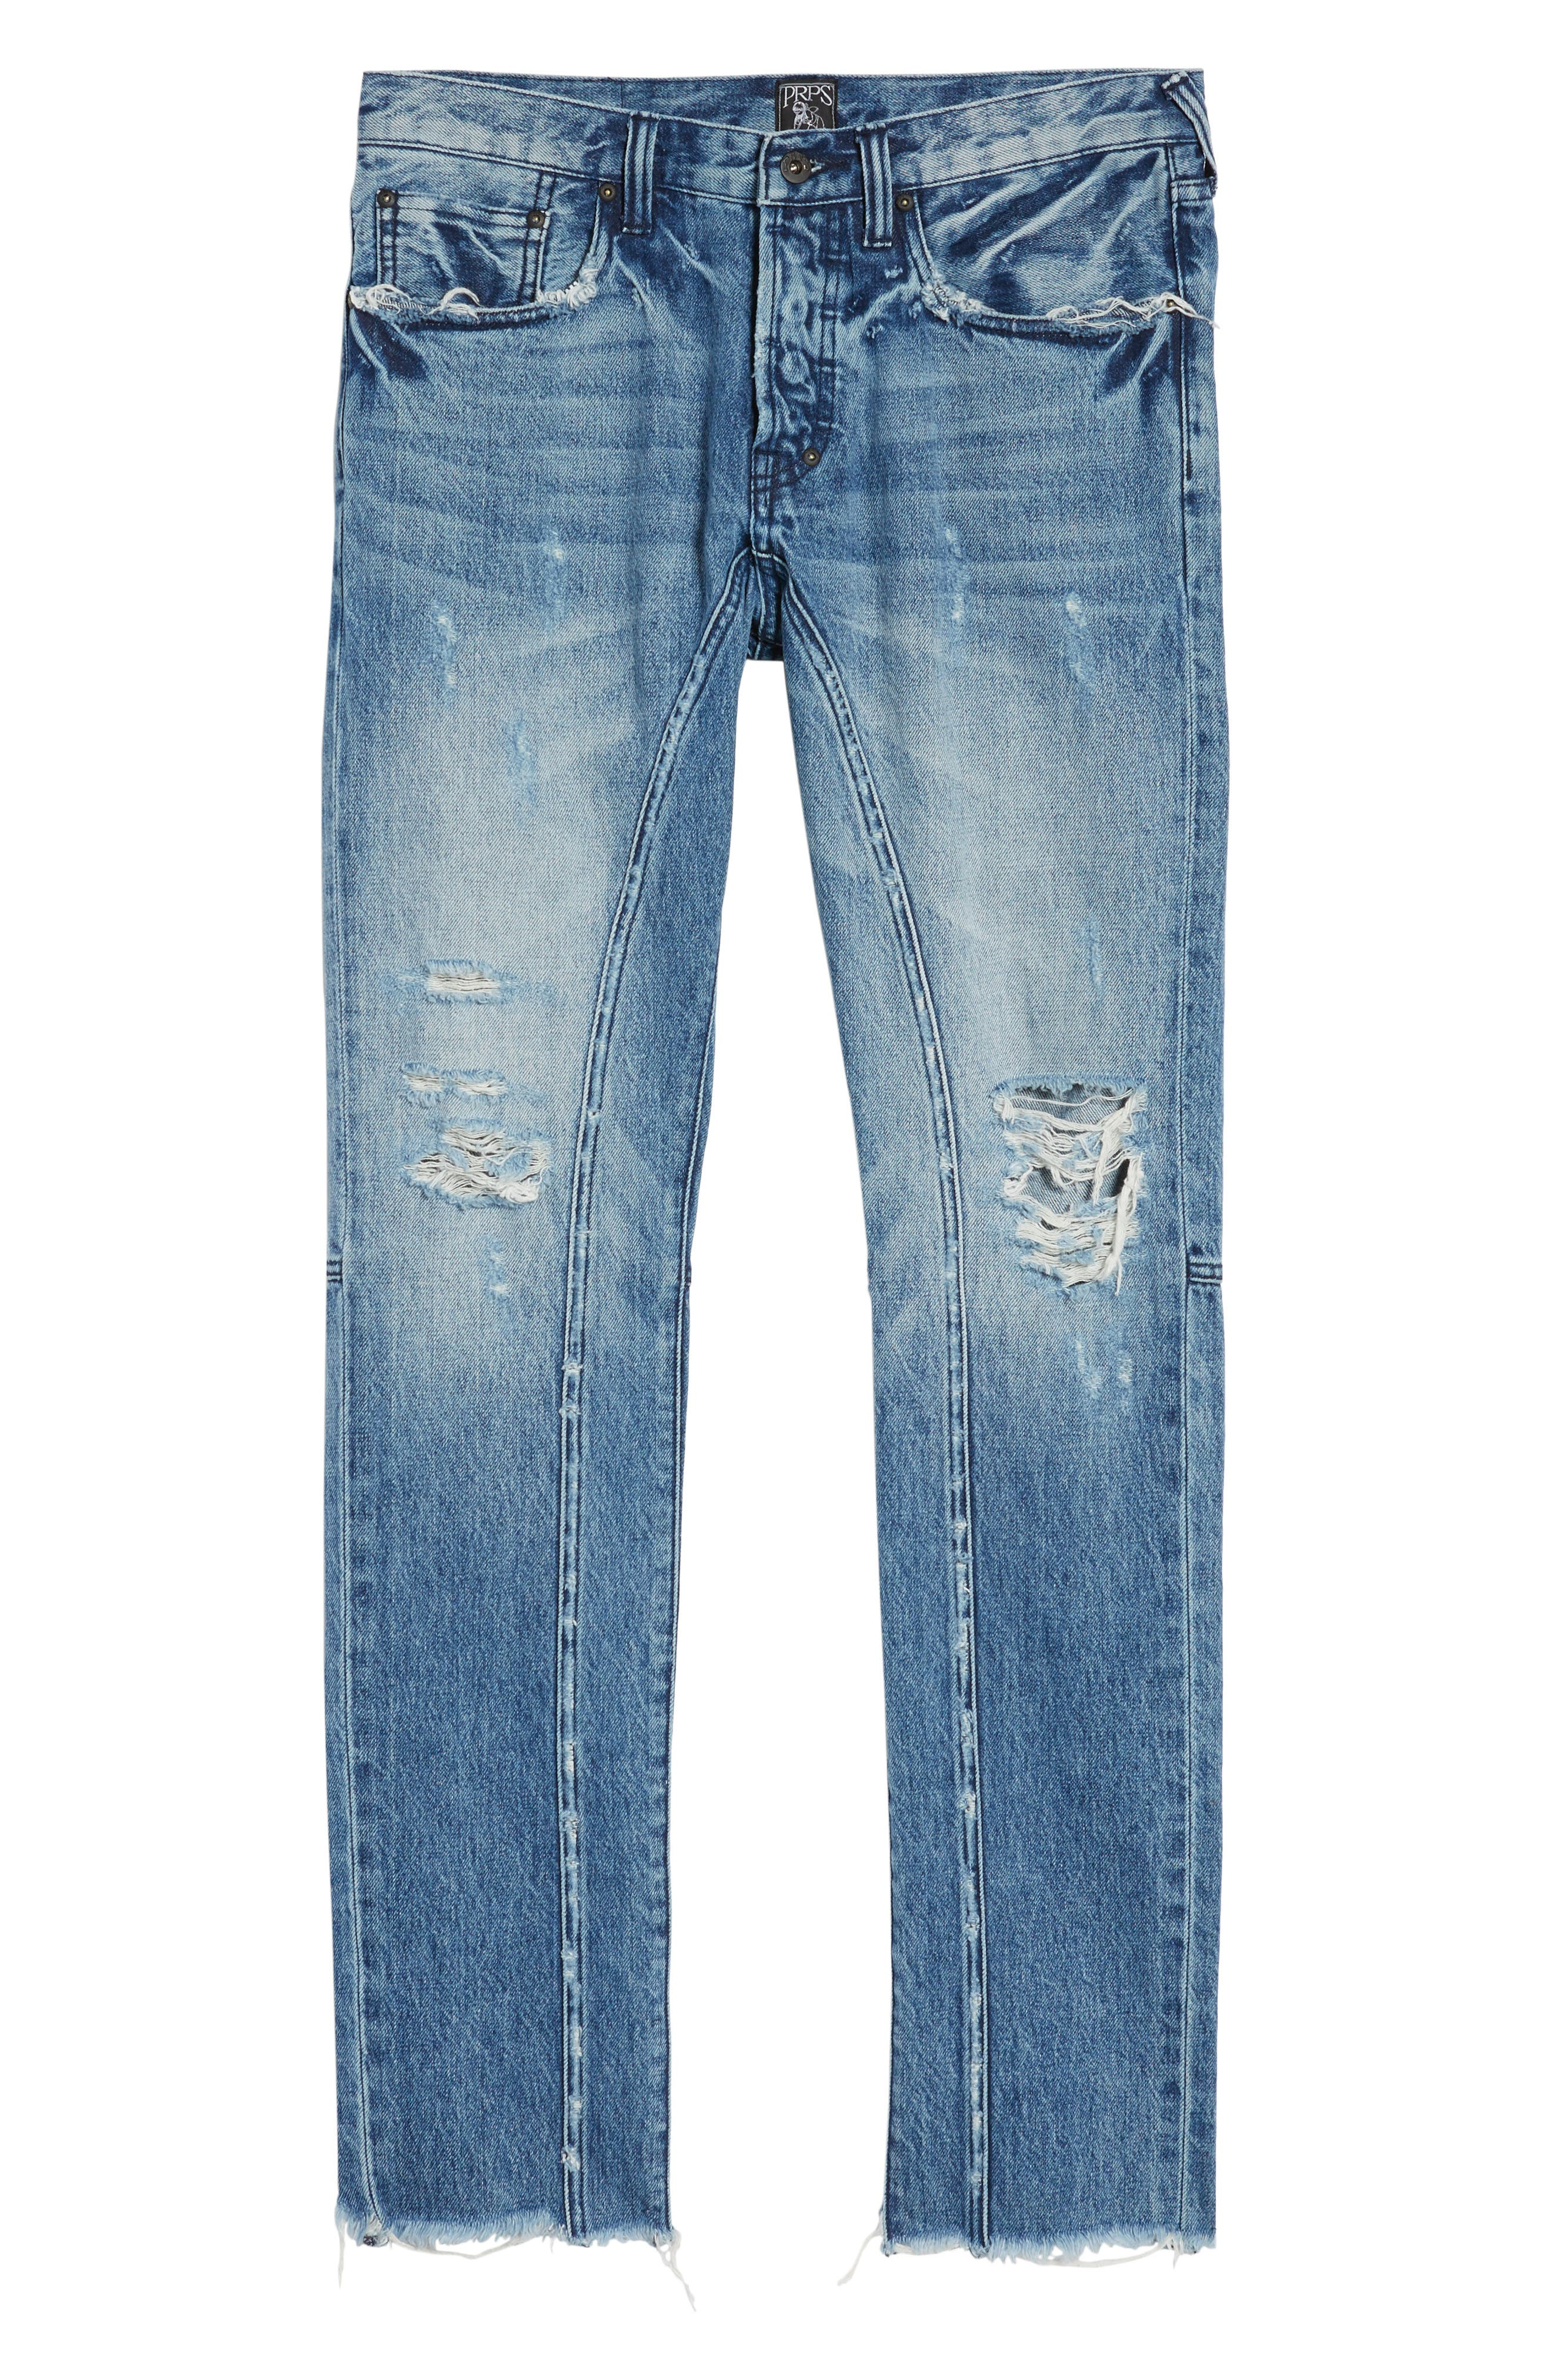 Le Sabre Tapered Fit Jeans,                             Alternate thumbnail 6, color,                             490